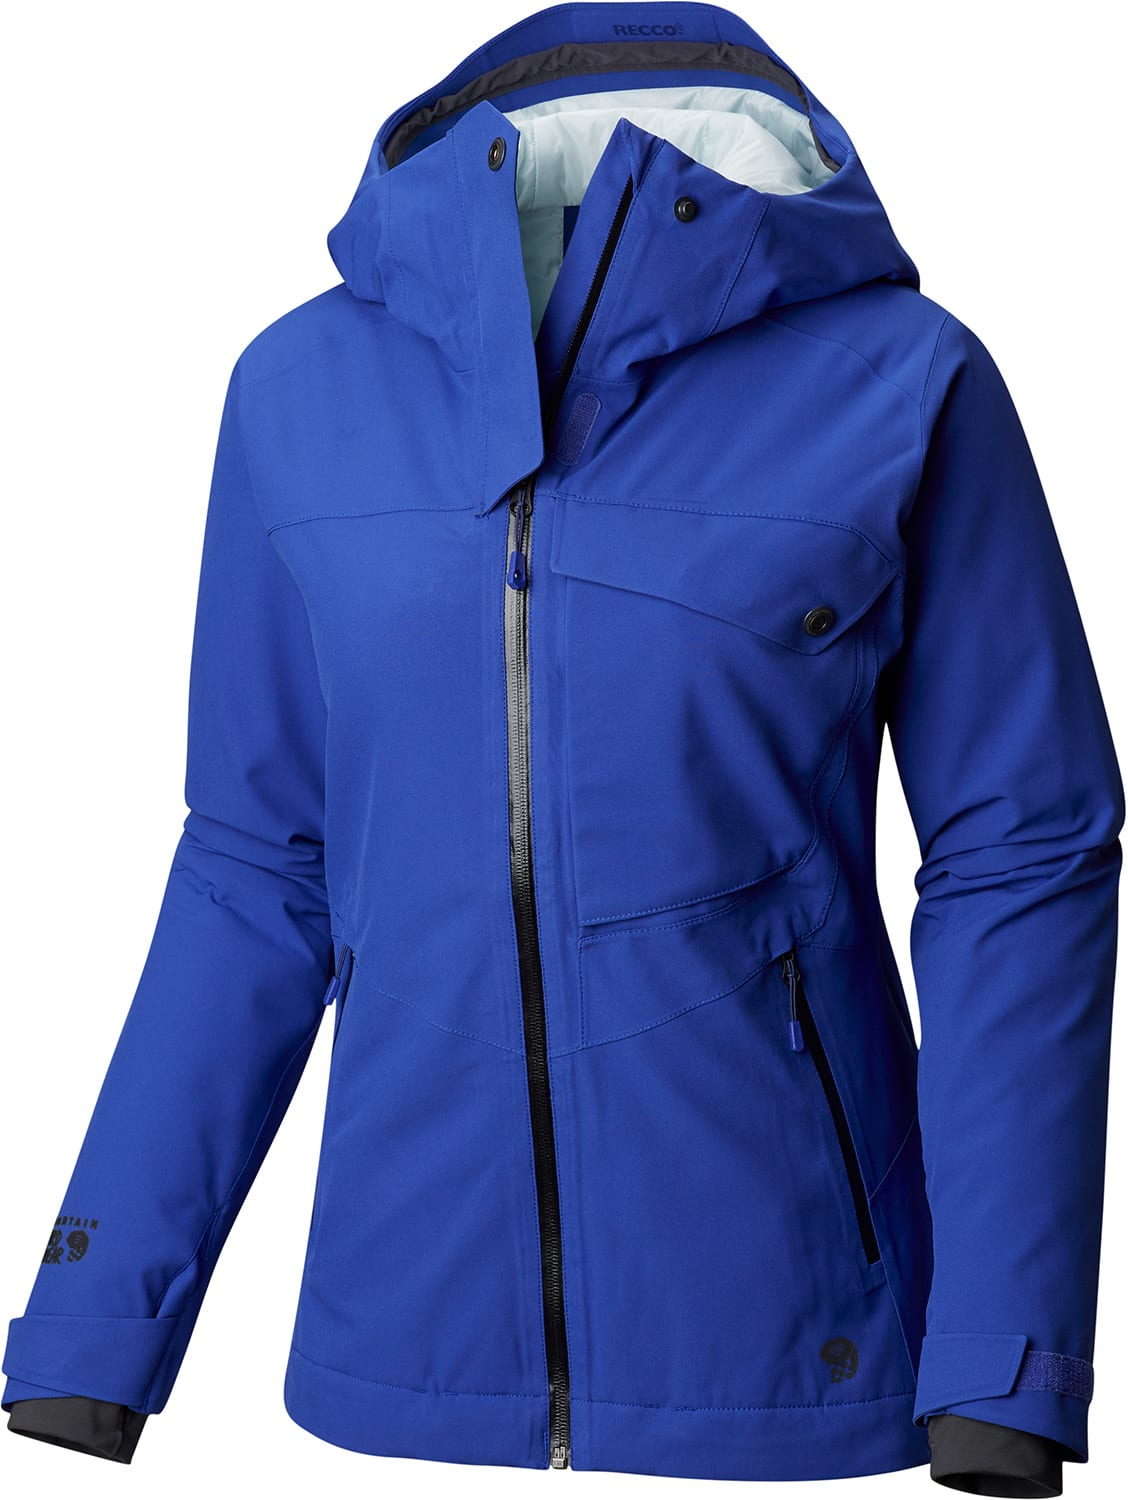 Mountain Hardwear Maybird Insulated Ski Jacket Womens 2019